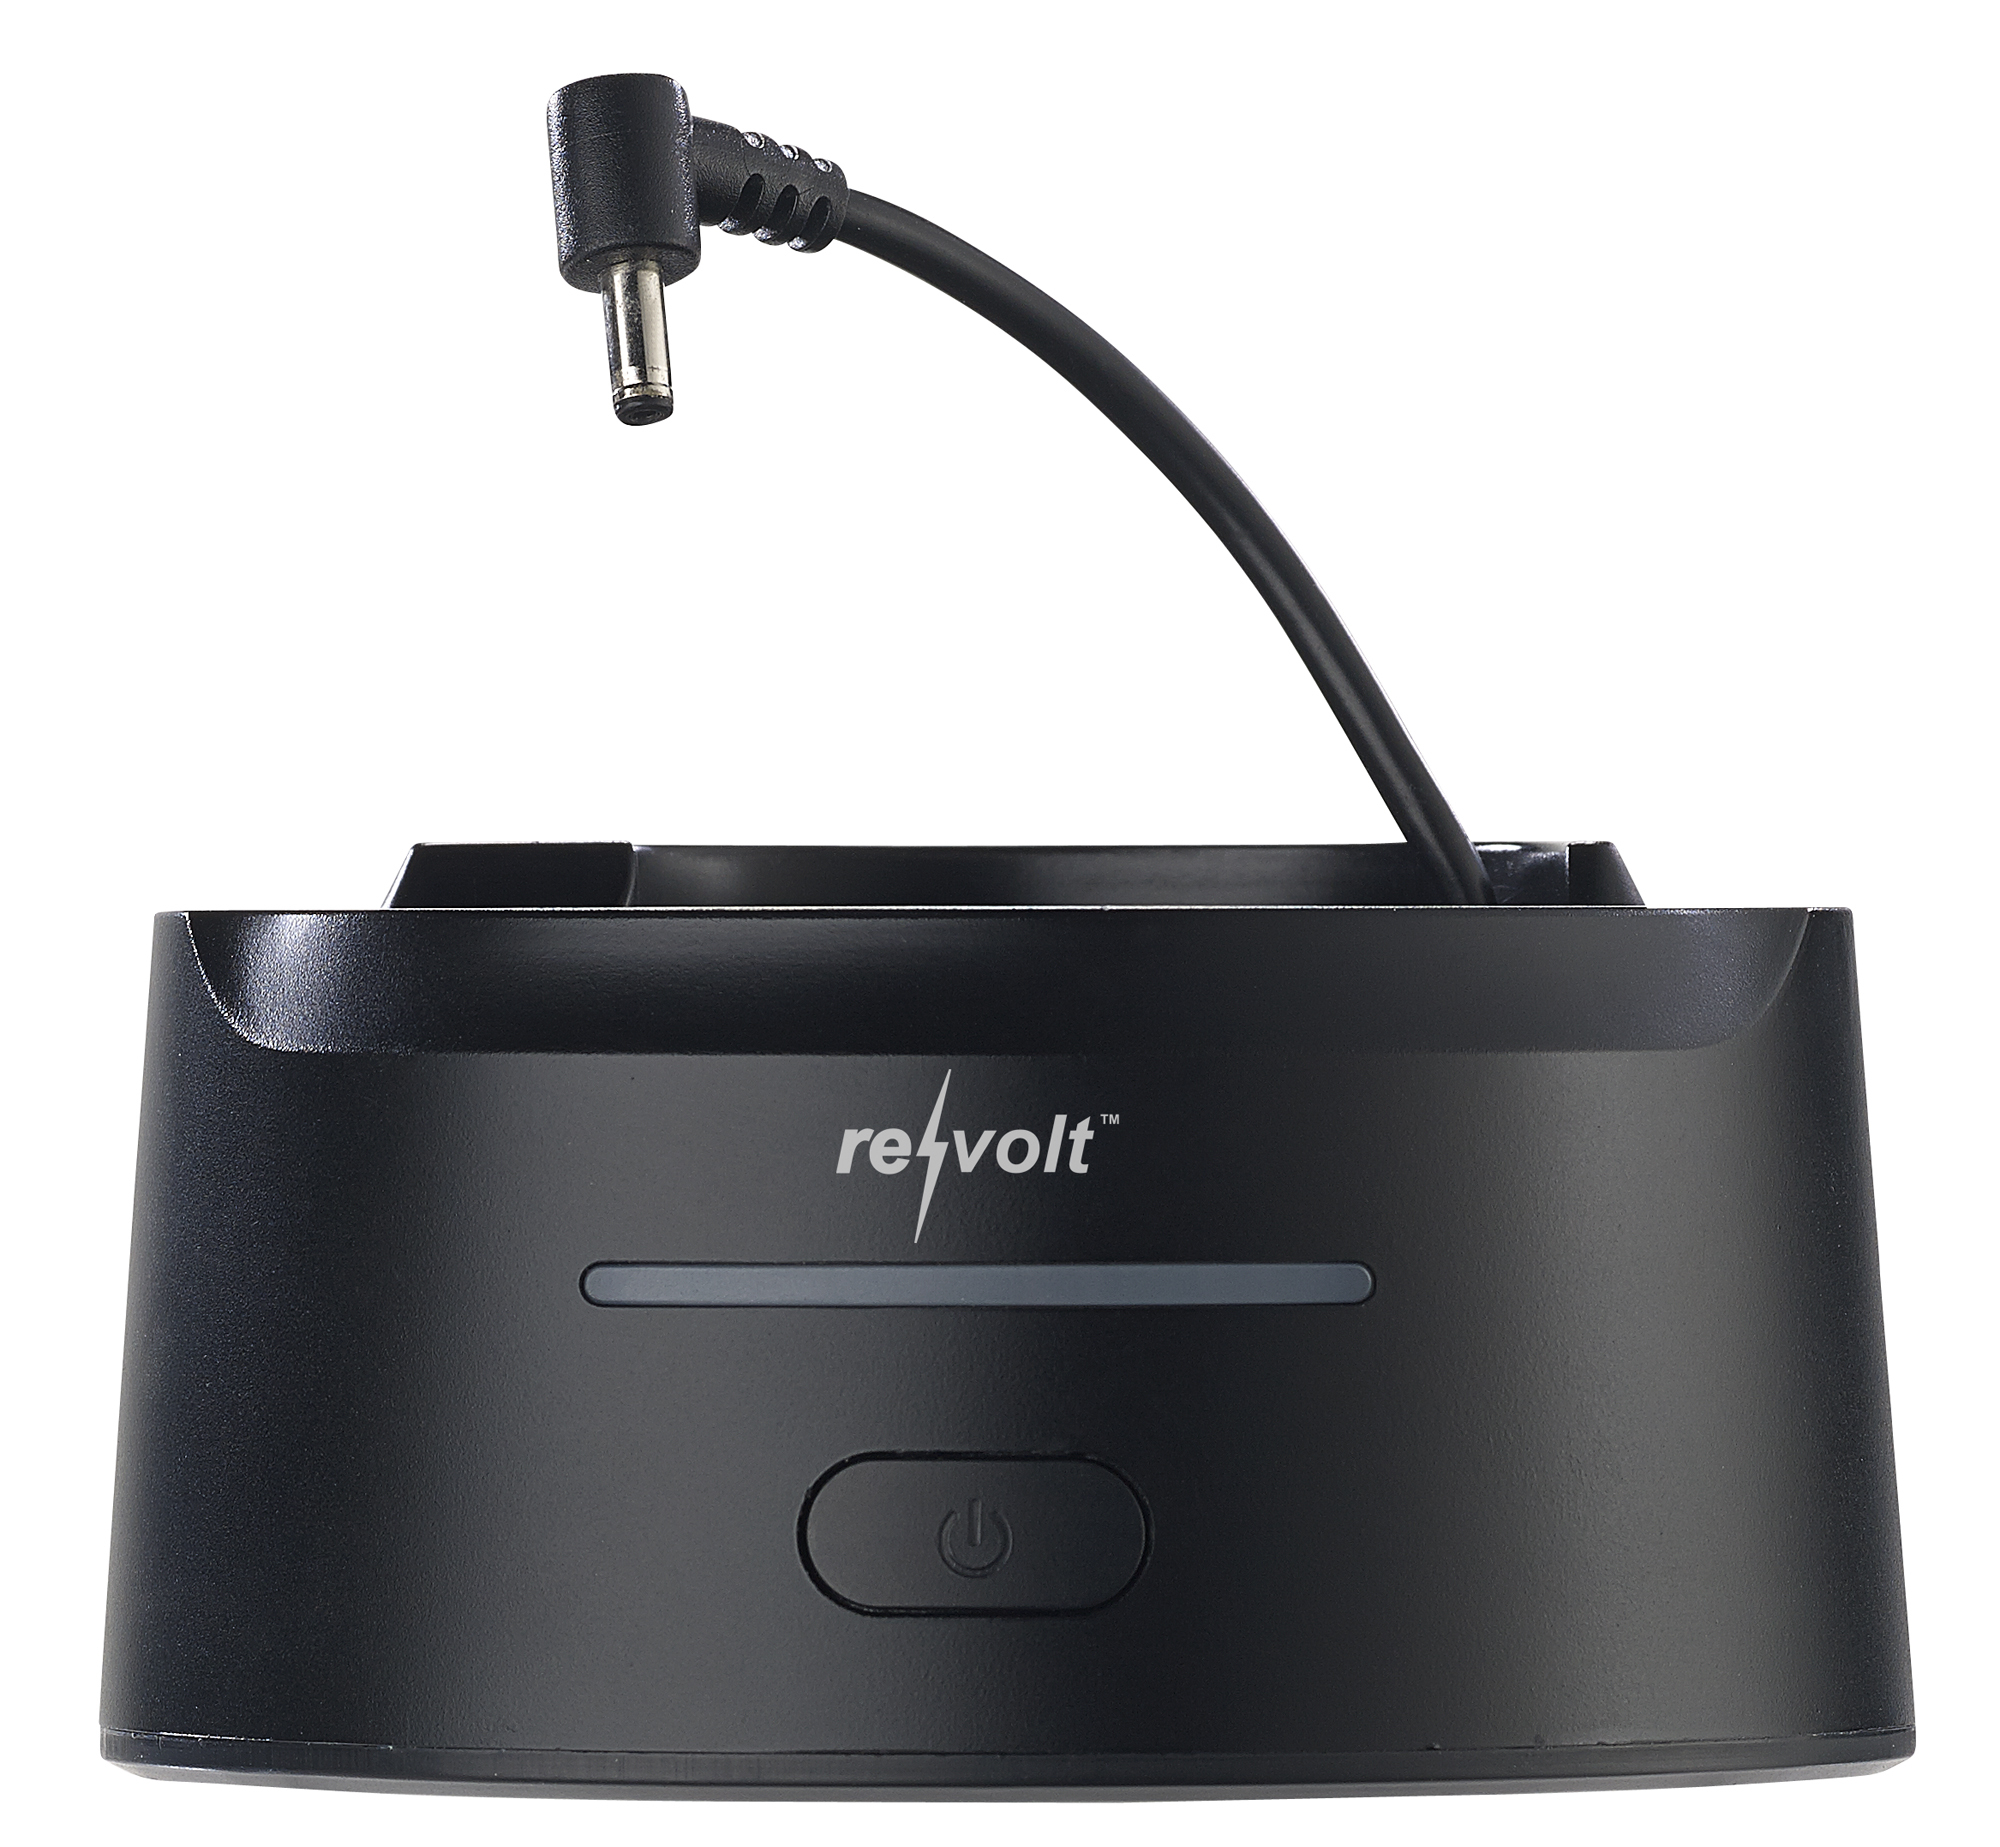 ZX 2817 7 revolt 2in1 Powerbank fuer Amazon Echo und USB Geraete 10 000 mAh Tragegurt